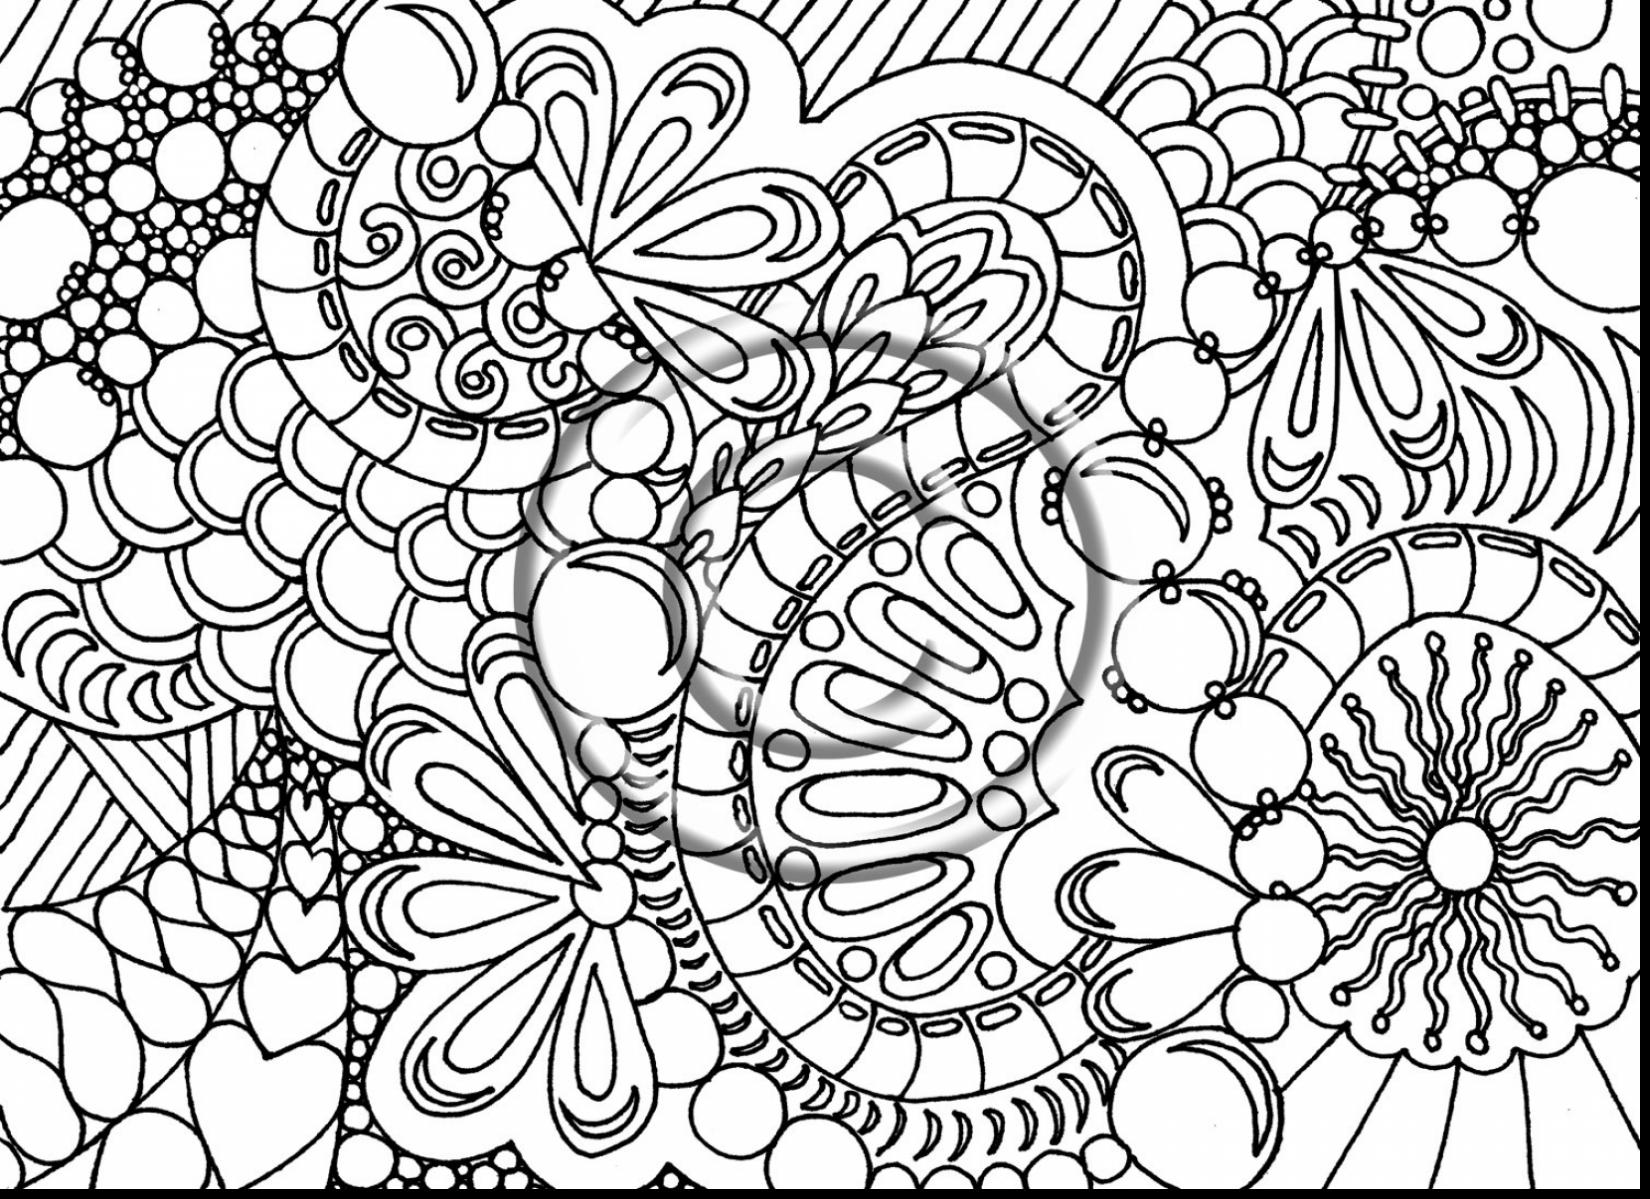 Christmas Advanced Coloring Pages at GetDrawings.com | Free for ...